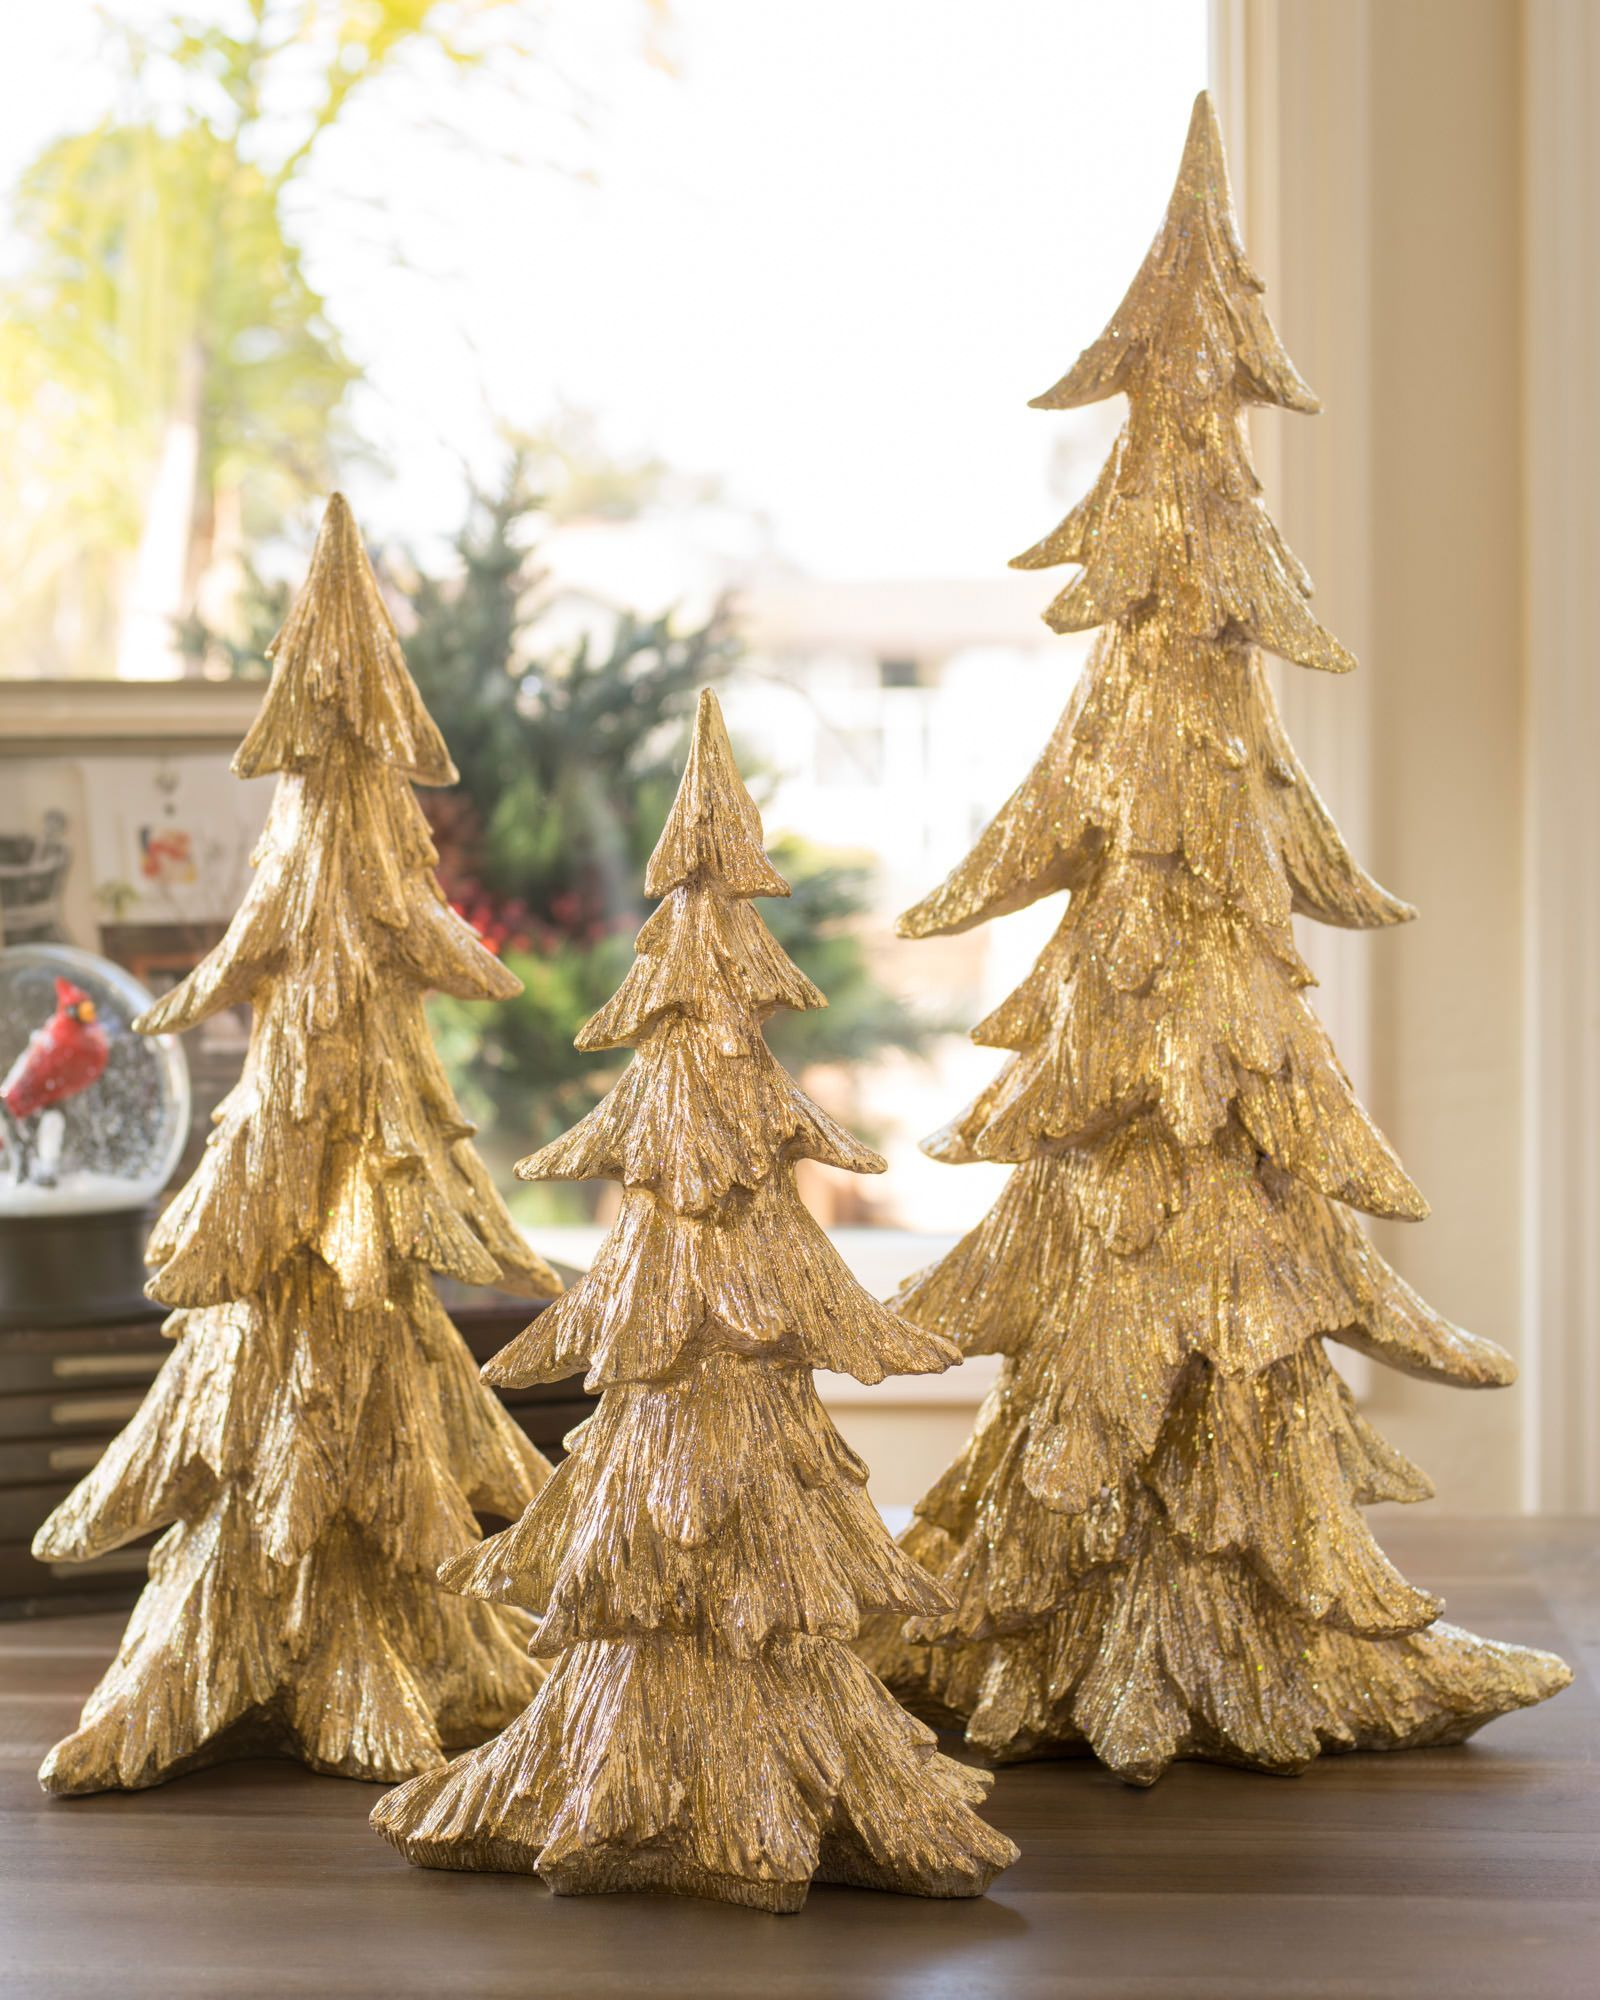 Set of 3 Gold Tabletop Christmas Trees | Balsam Hill